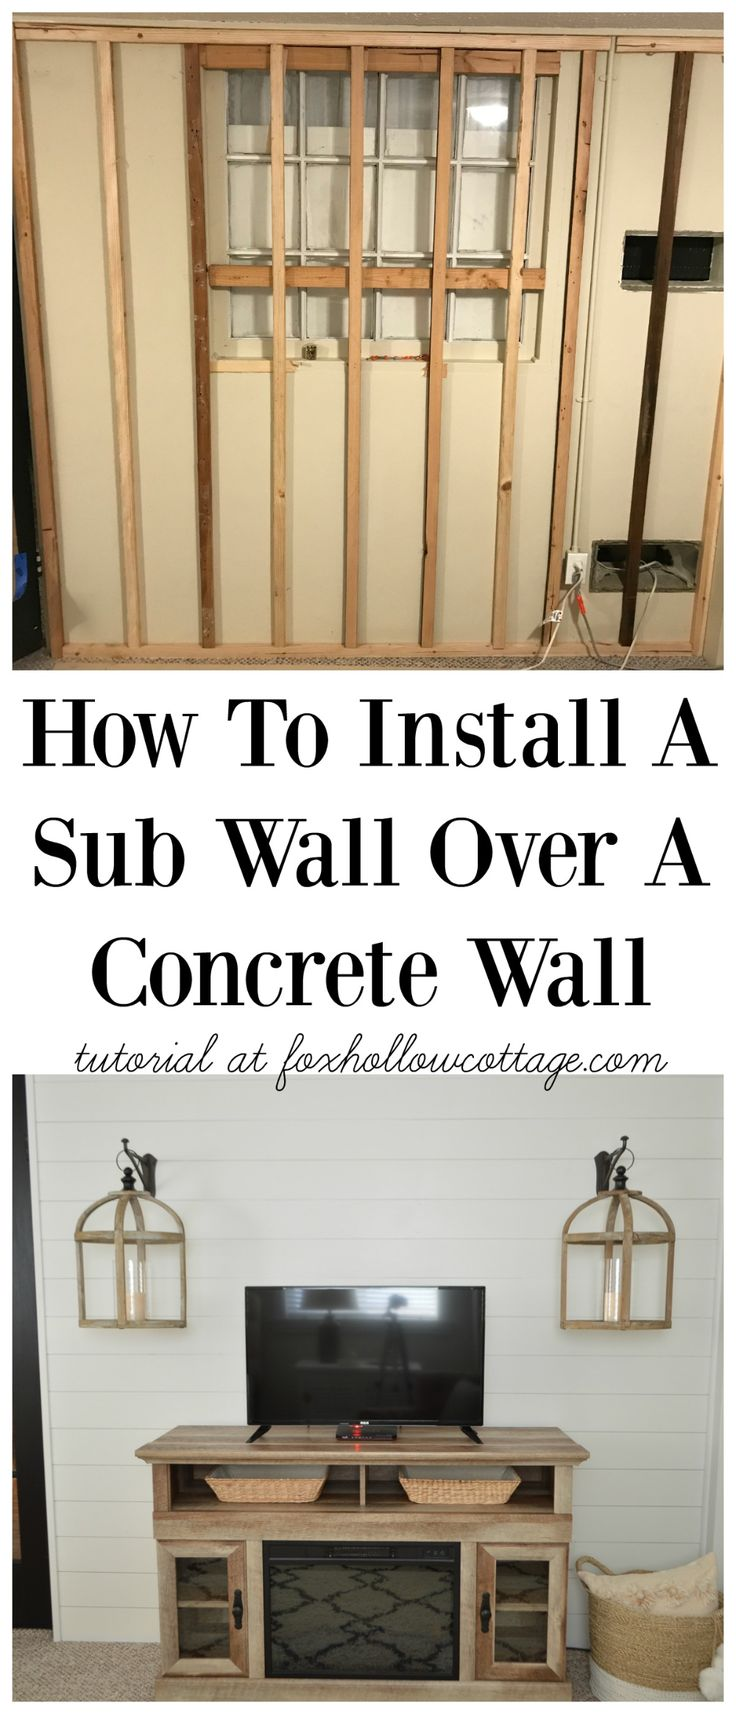 How To Install Shiplap Over A Concrete Wall Installing